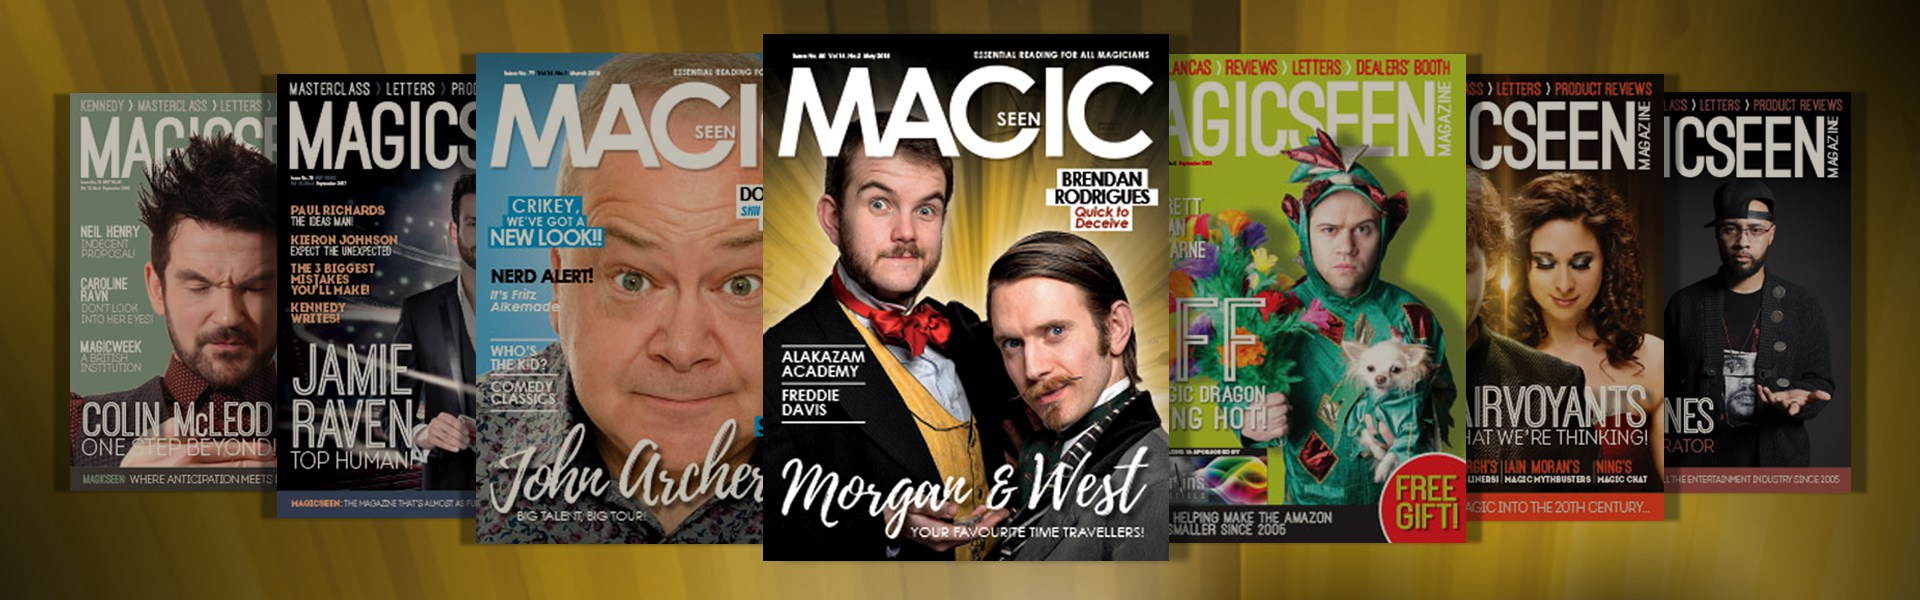 >12 Months Magicseen Subscription